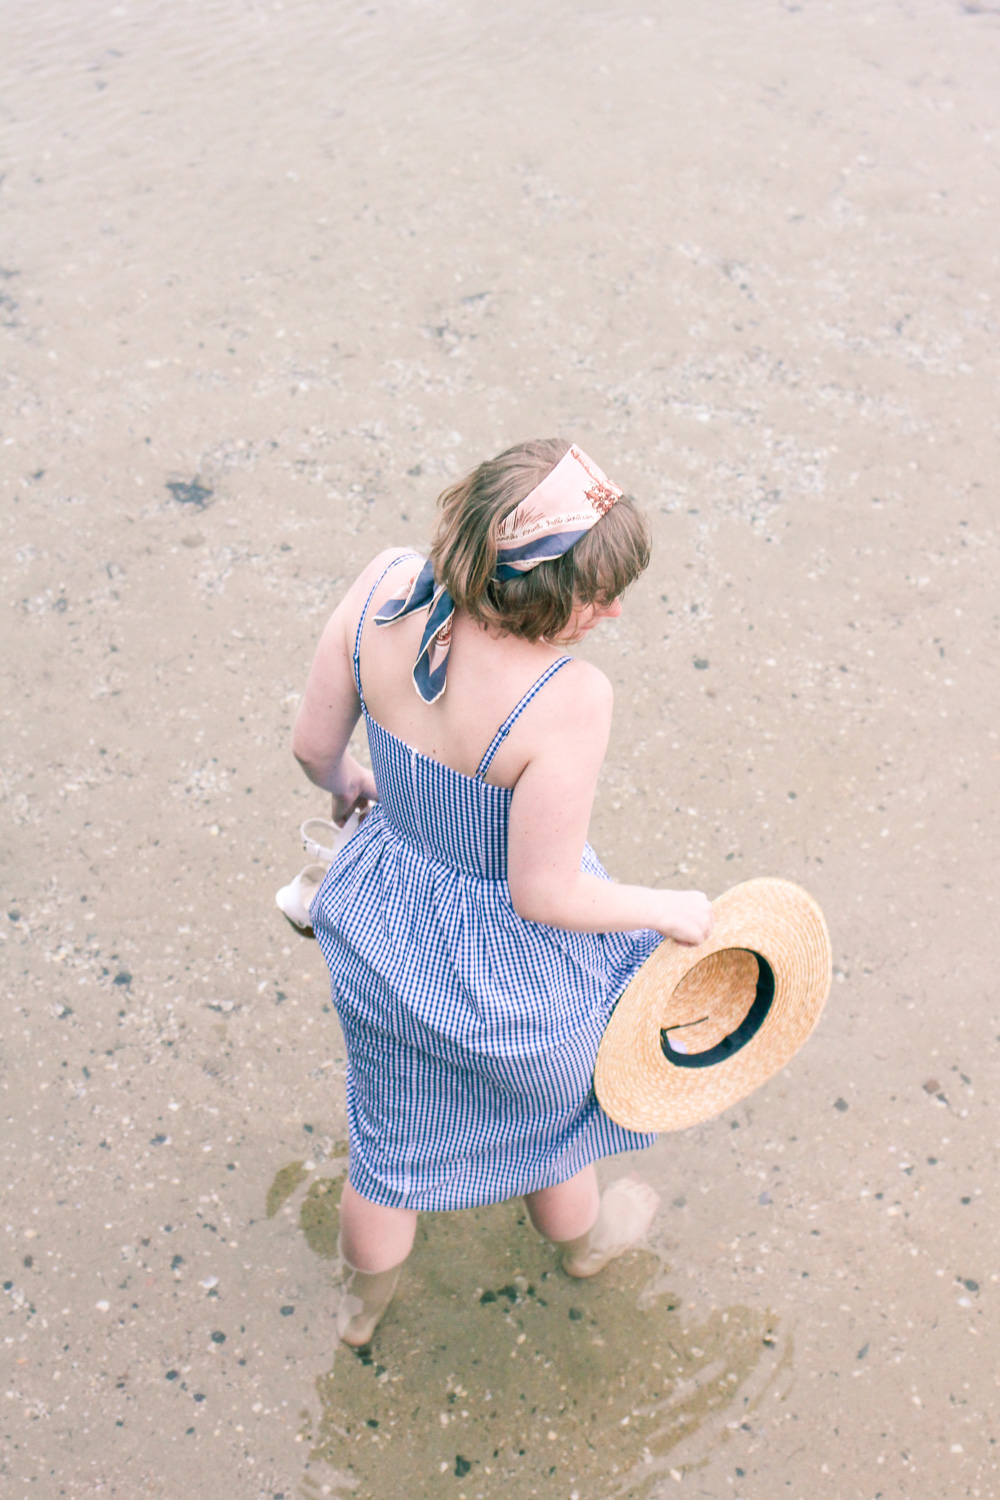 @findingfemme wears Seed Heritage blue gingham summer dress as the beach with straw boater